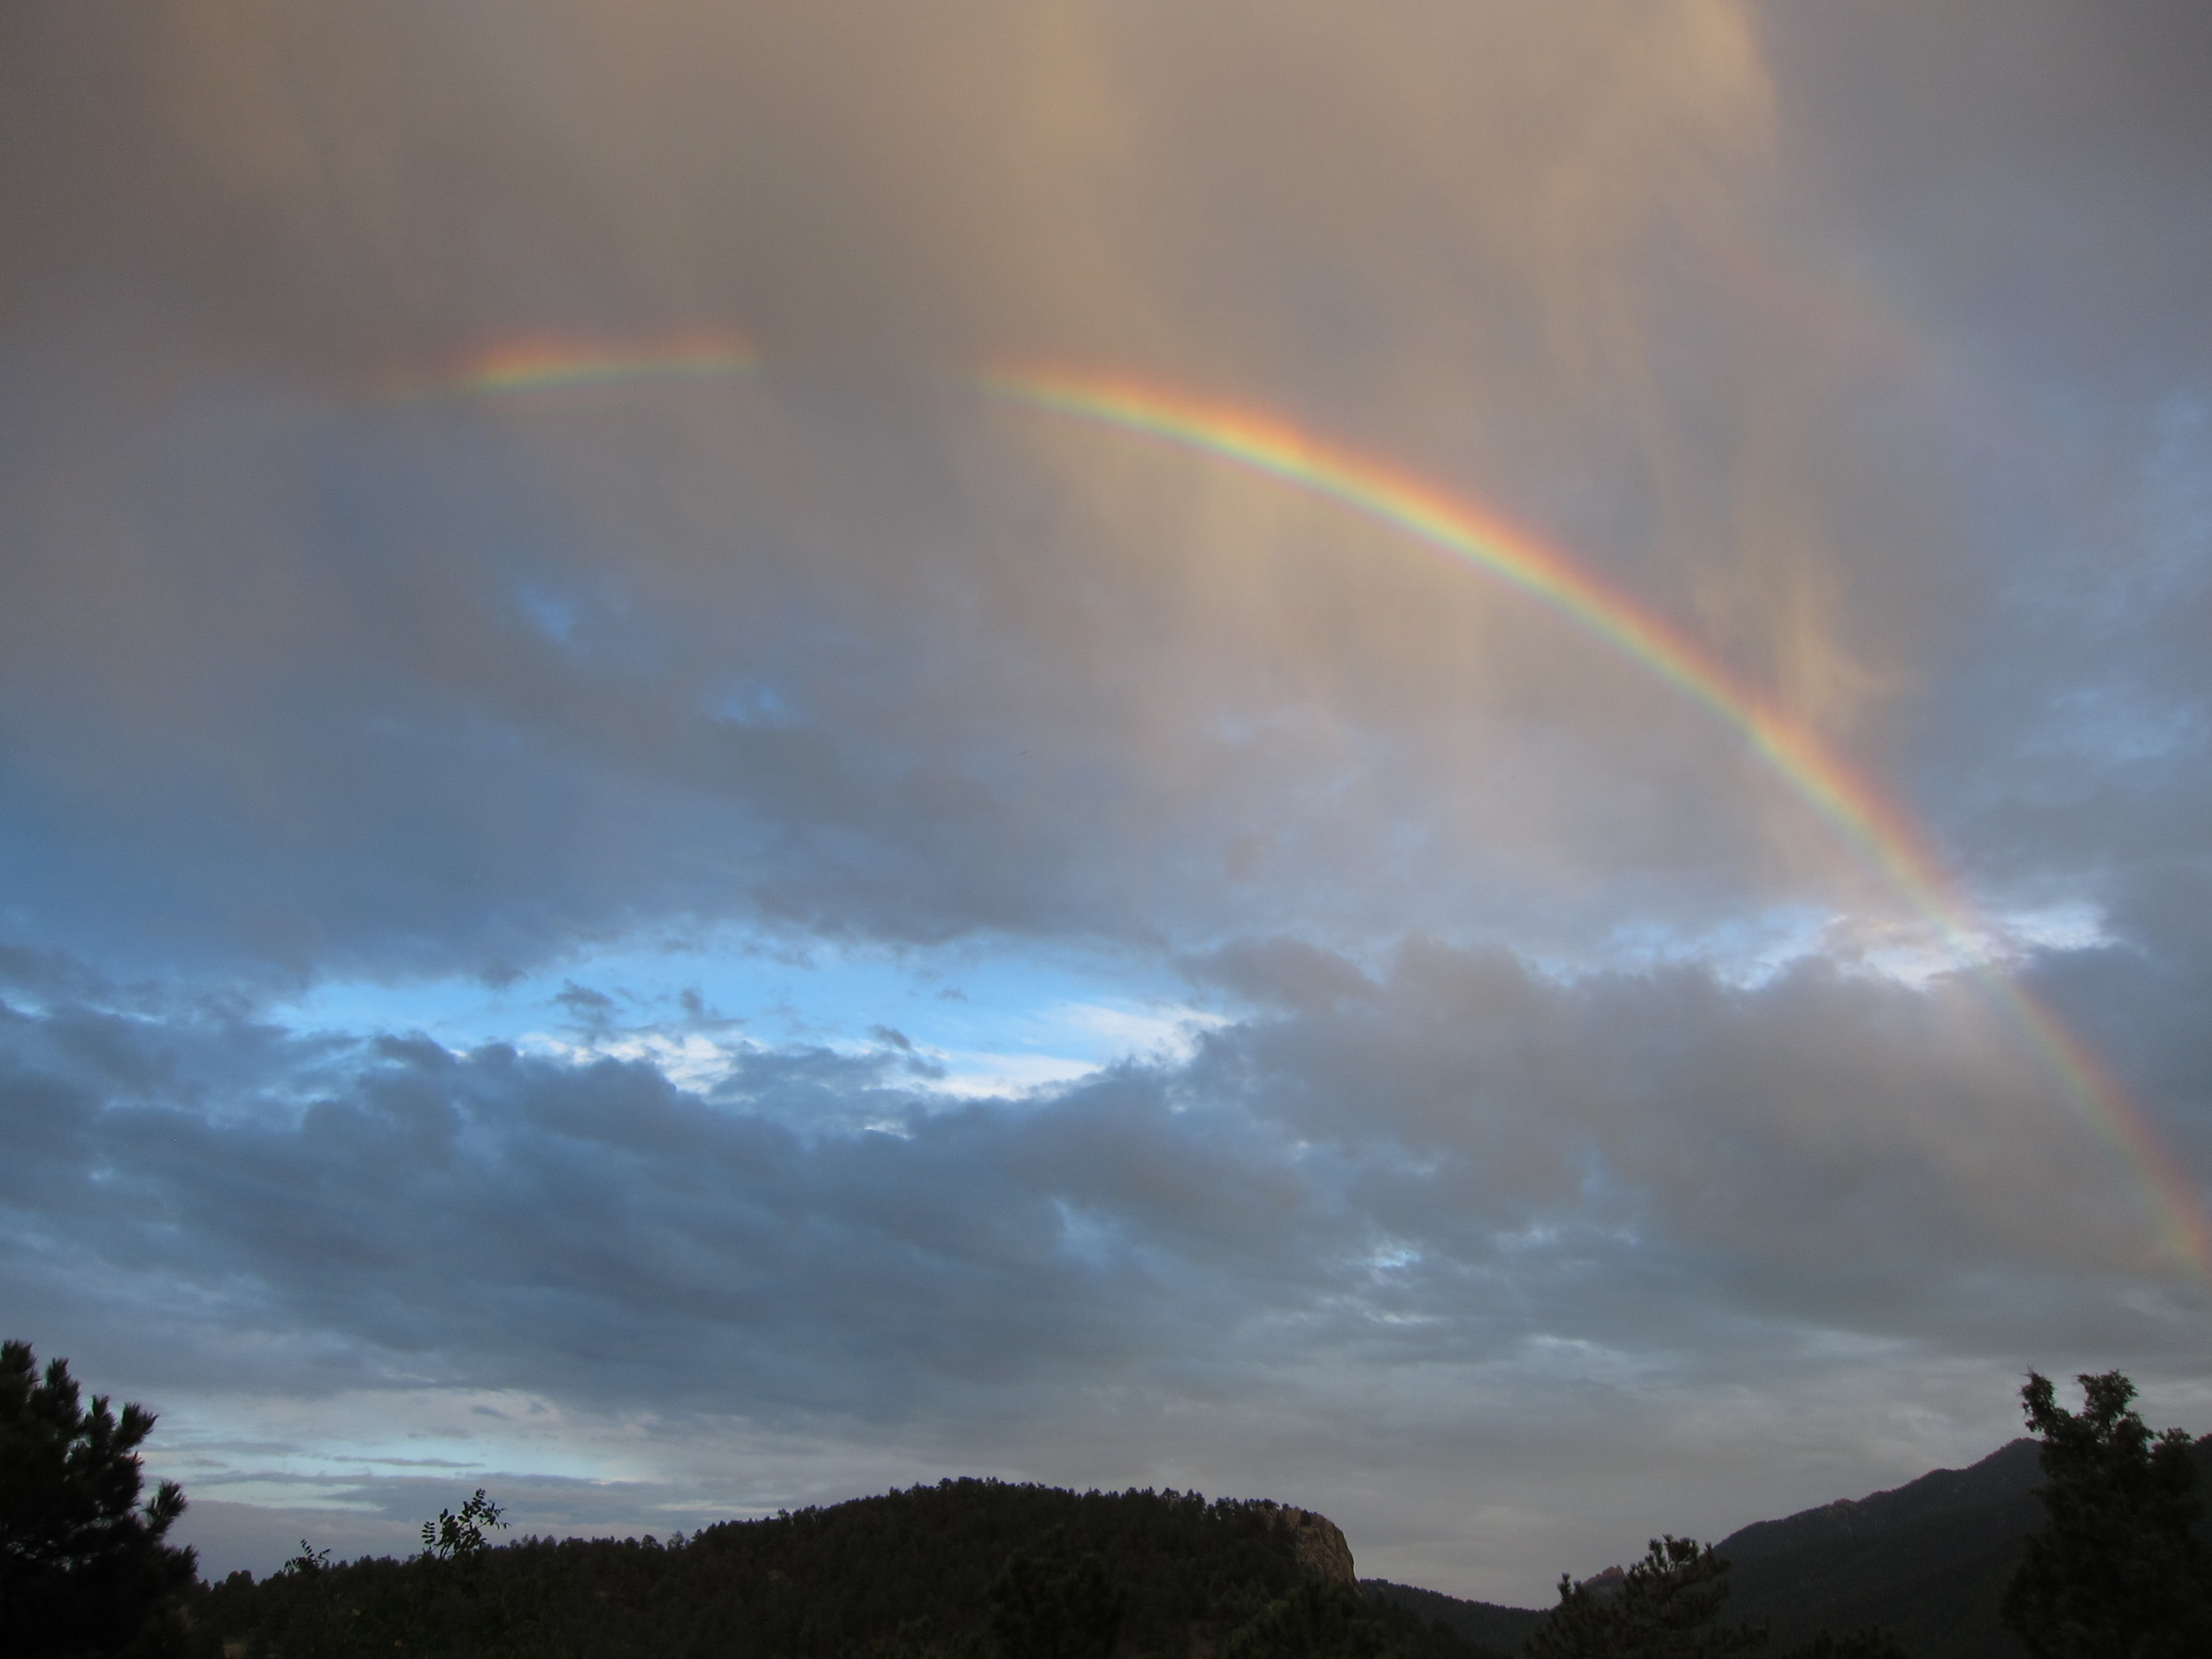 A rainbow appeared just after the storm